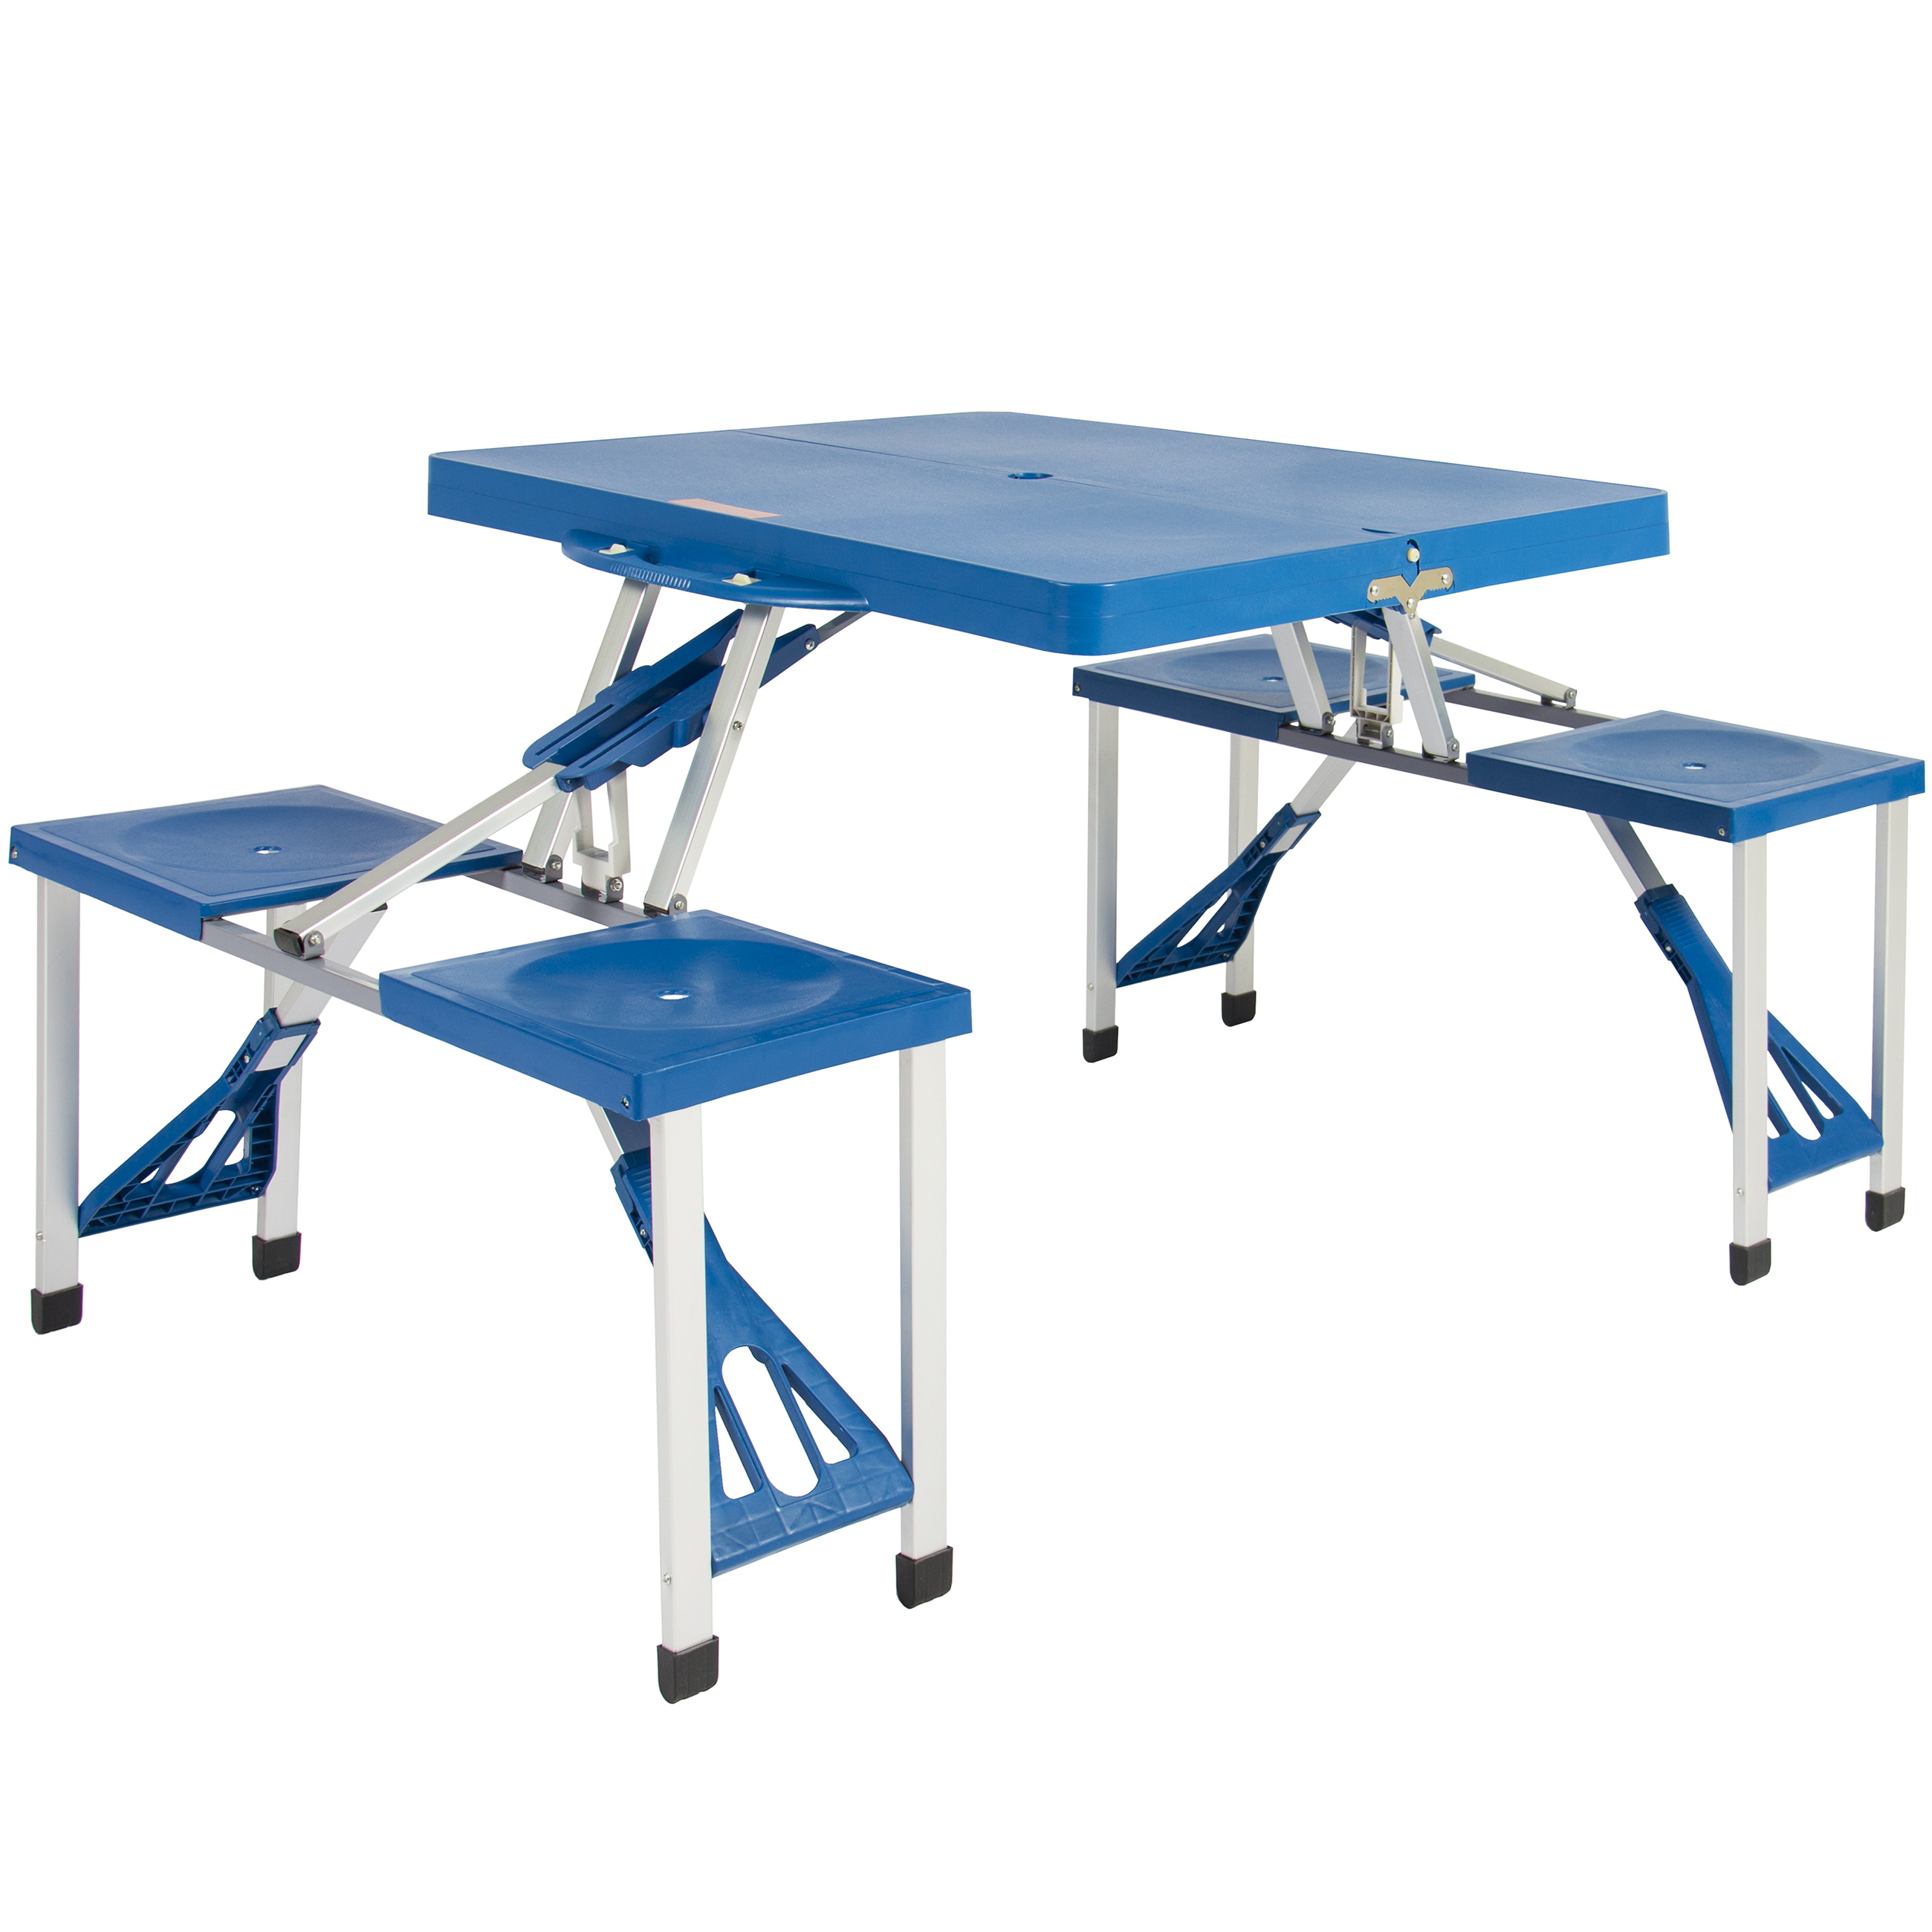 Best Choice Products 4 Seat Outdoor Portable Plastic Folding Table For Picnics Camping W Umbrella Holder Blue